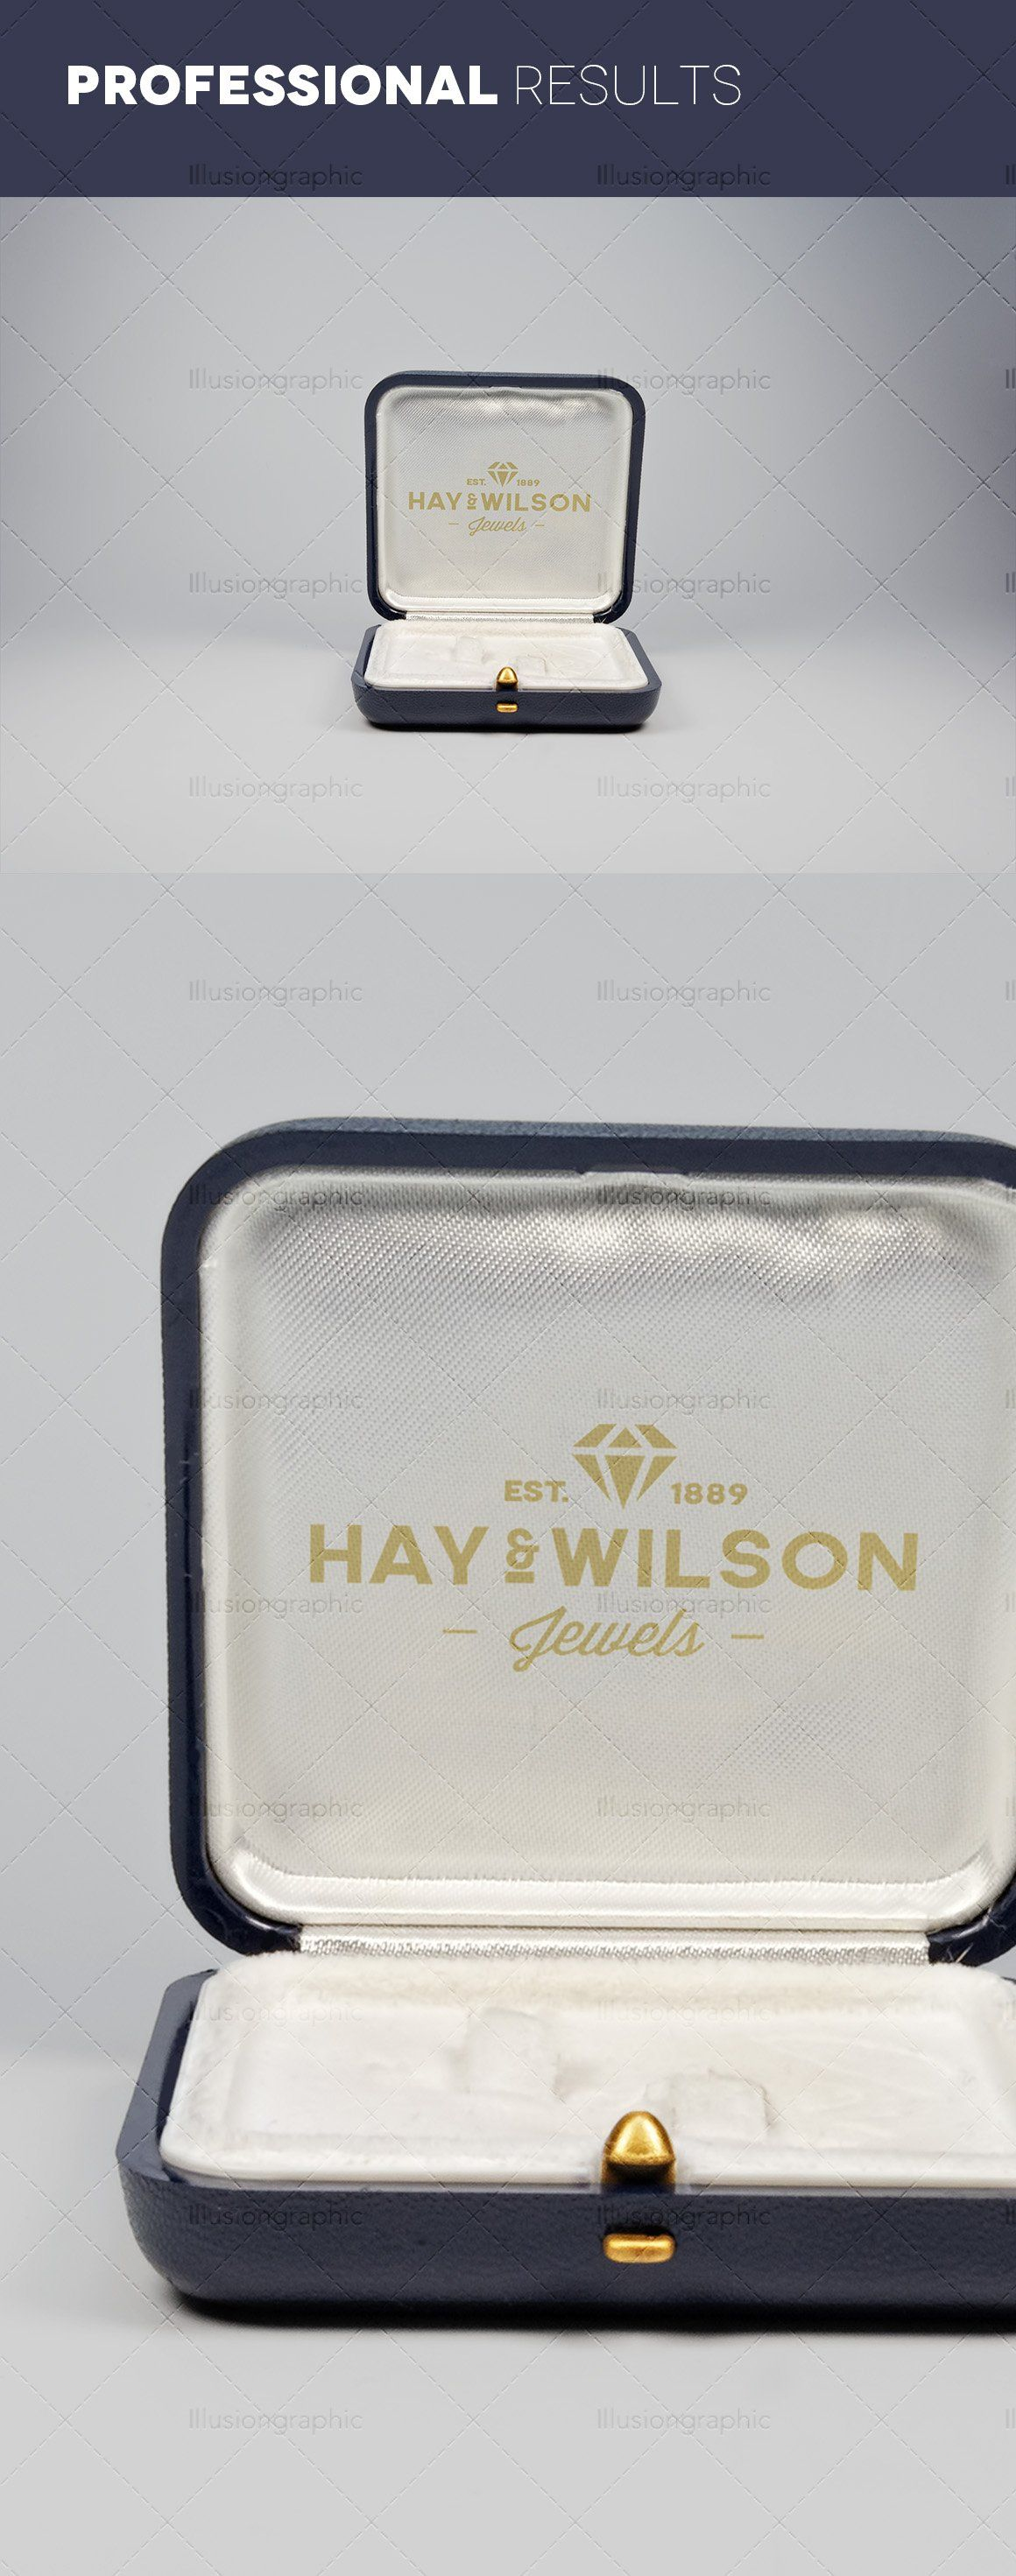 Download Logo On Jewelry Box Mockups V 2 Box Mockup Mockup Freelance Graphic Design